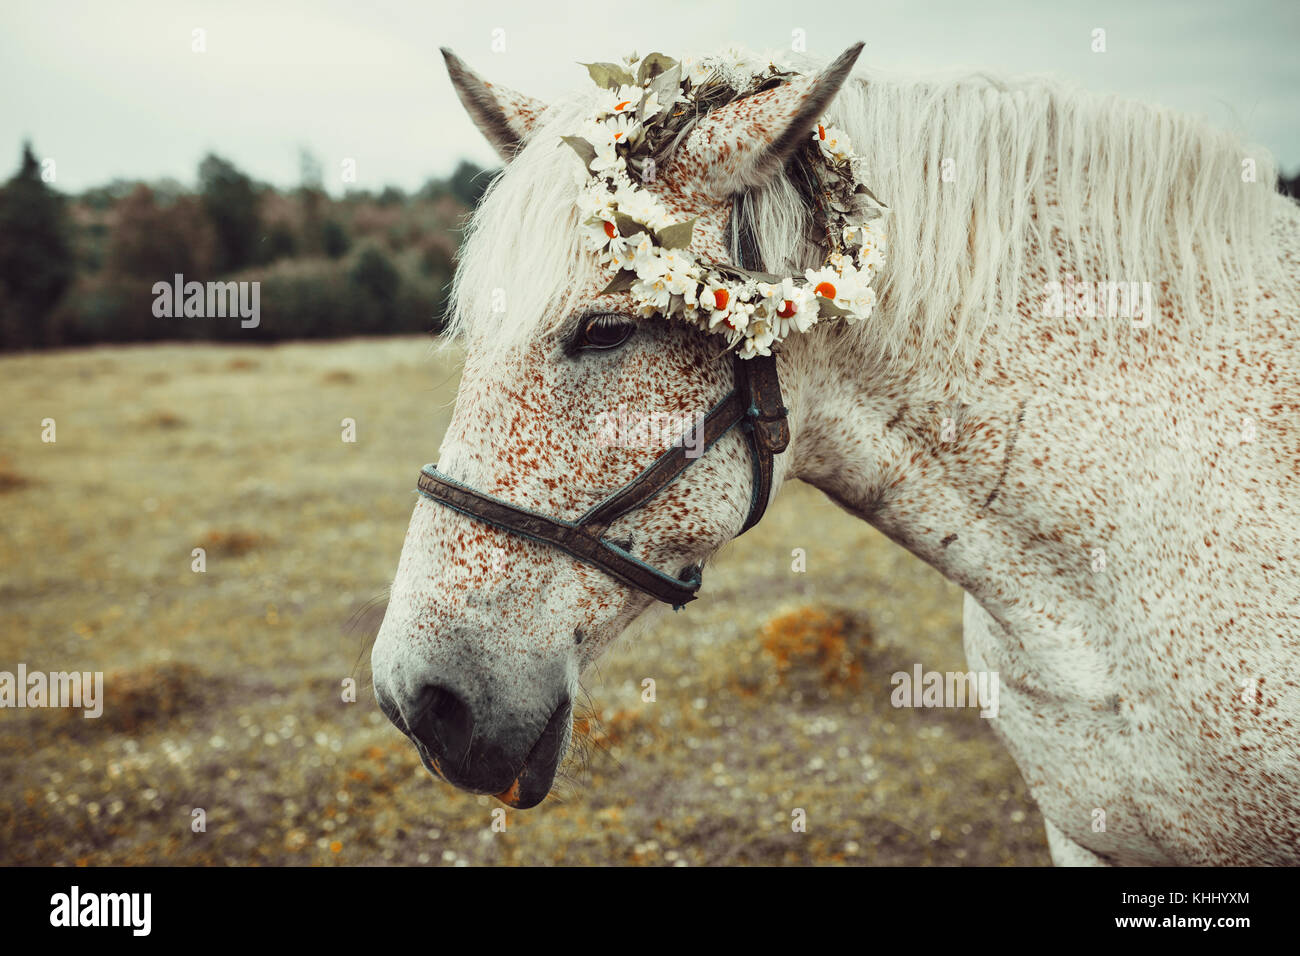 White horse with freckles - Stock Image